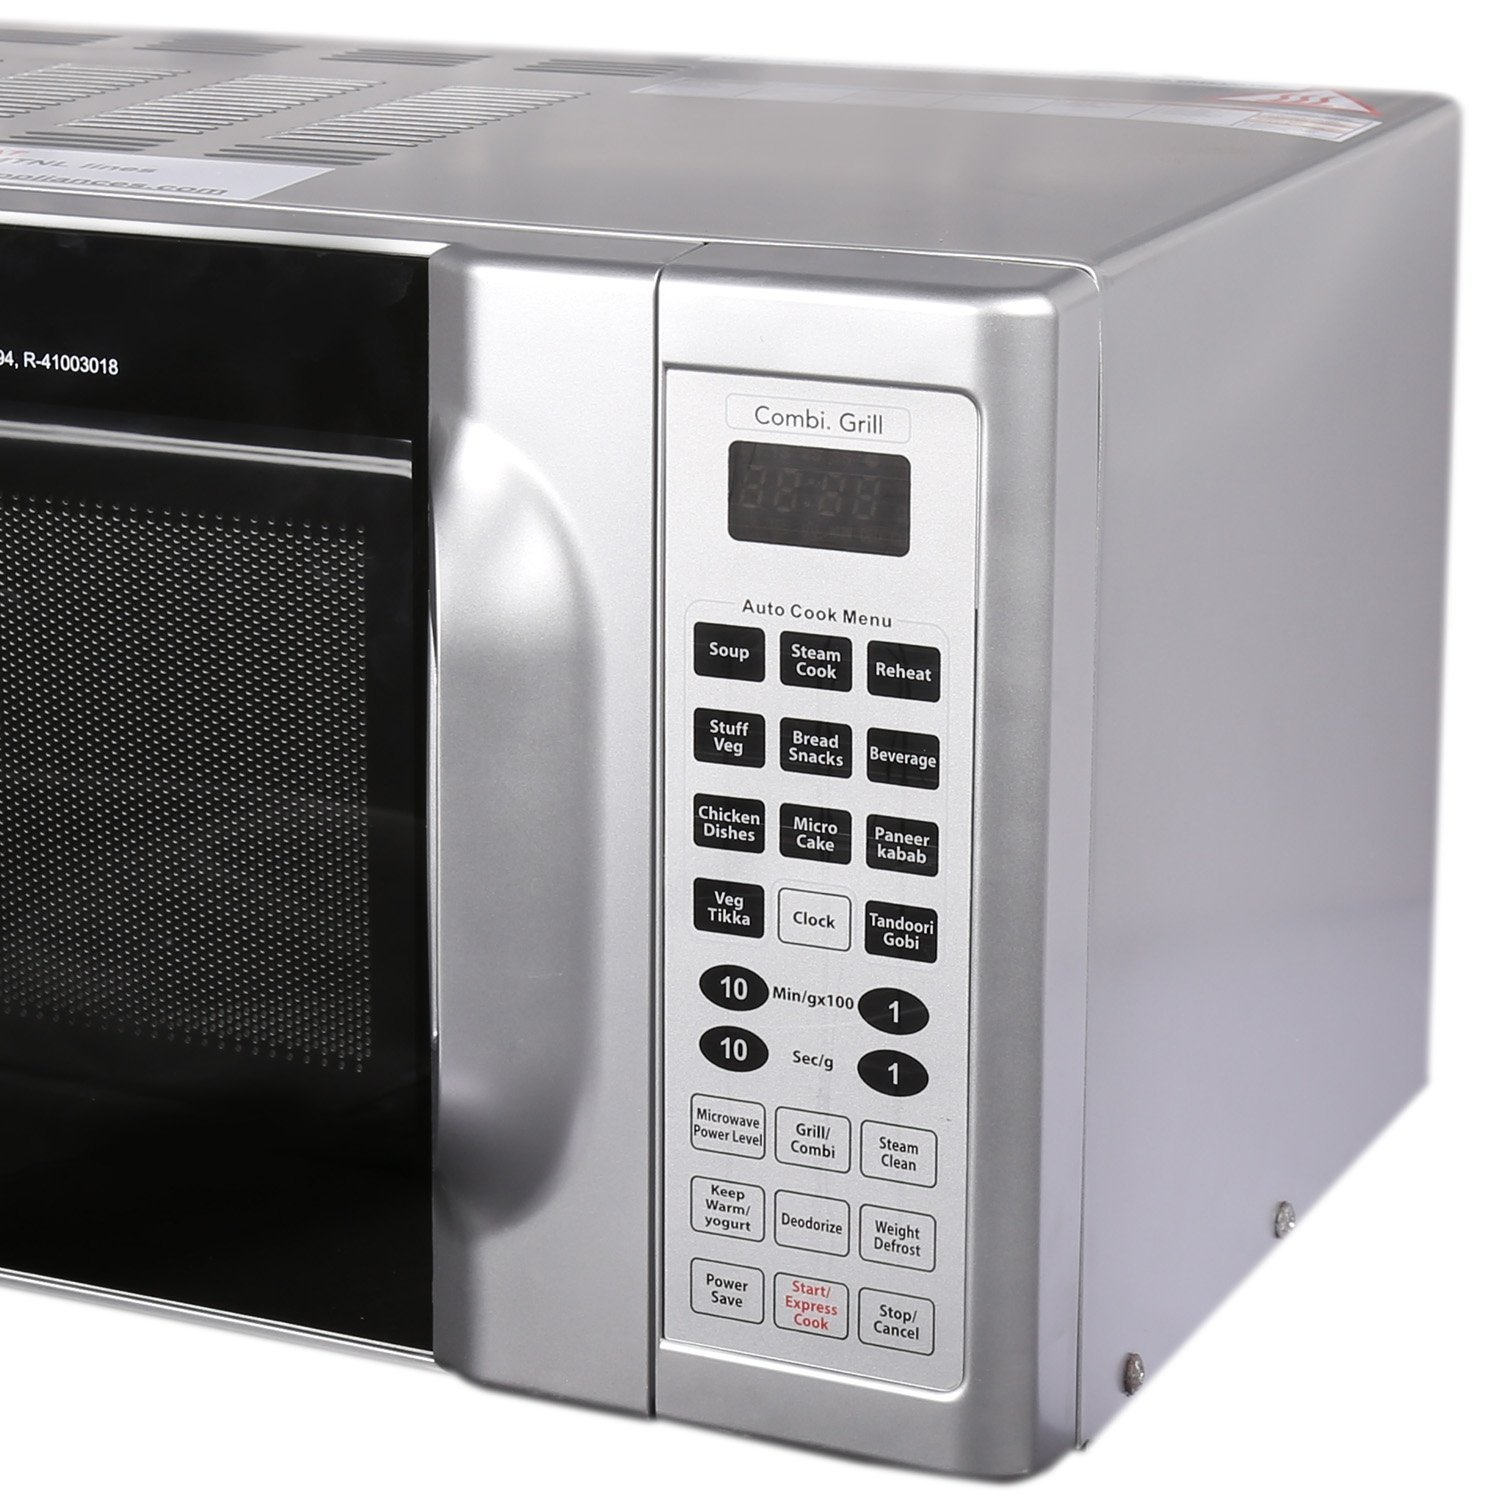 How To Make Cake In Ifb Microwave 20pg3s